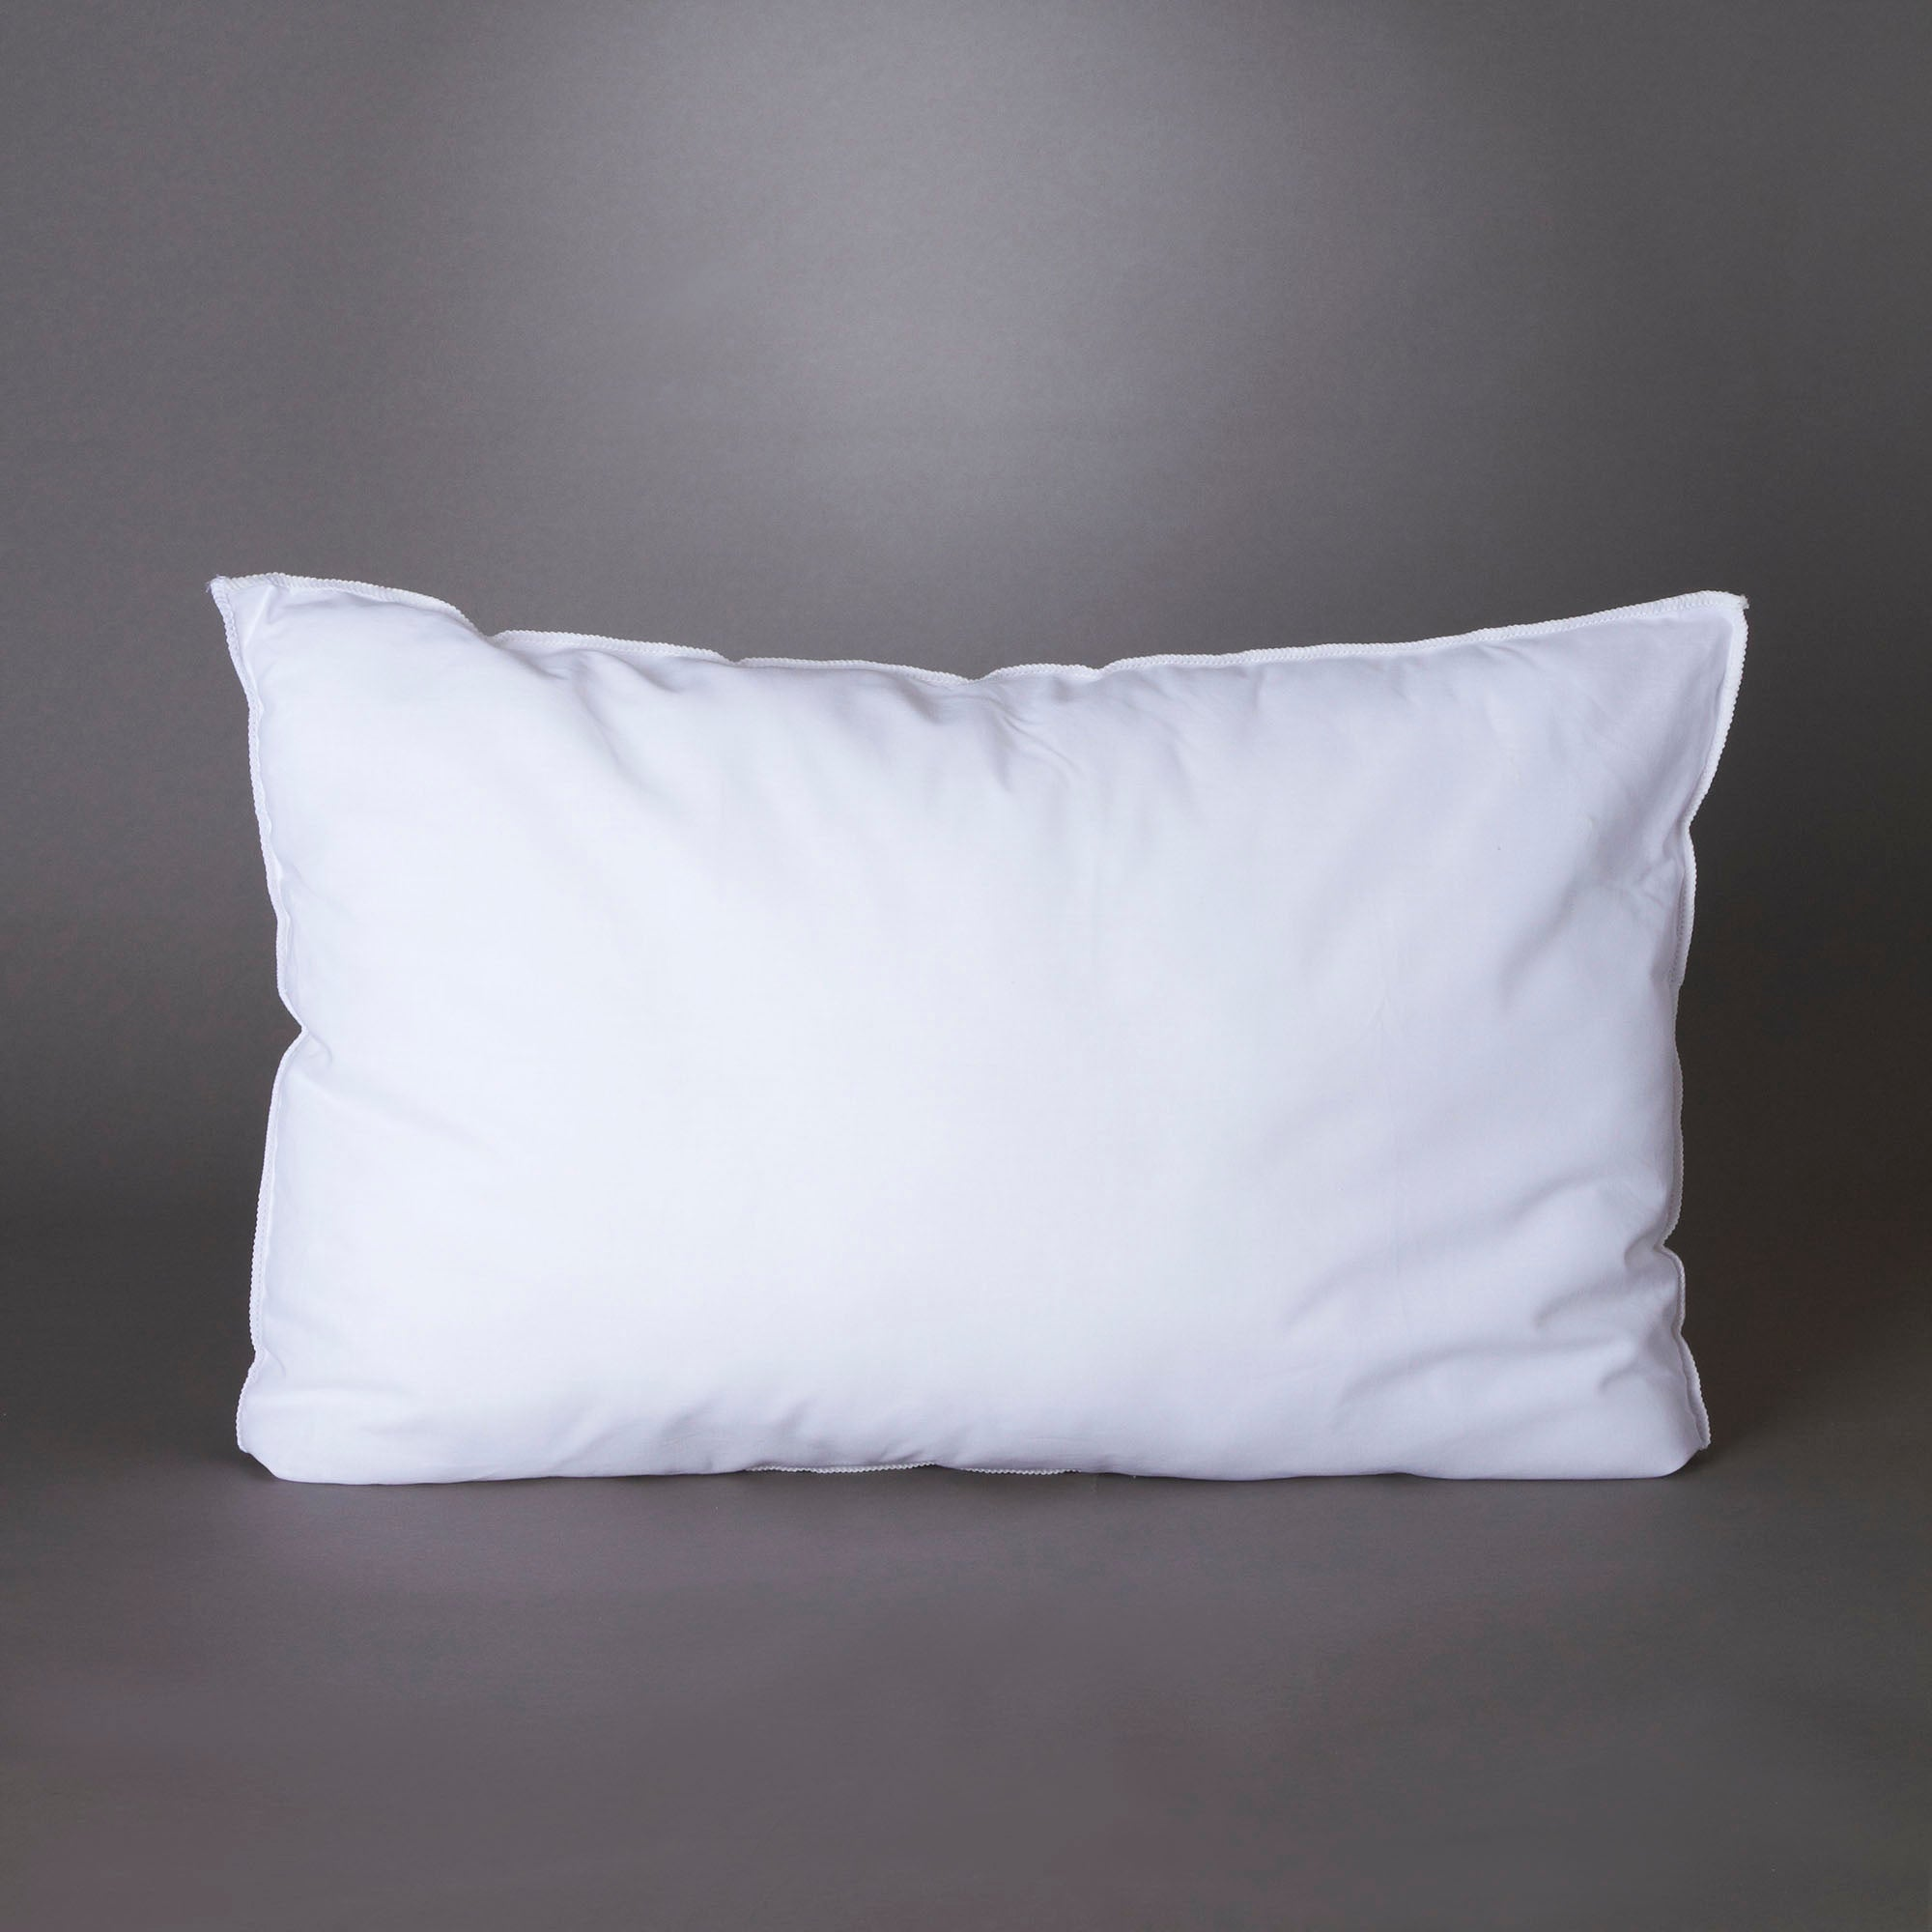 Cot Bed Pillow